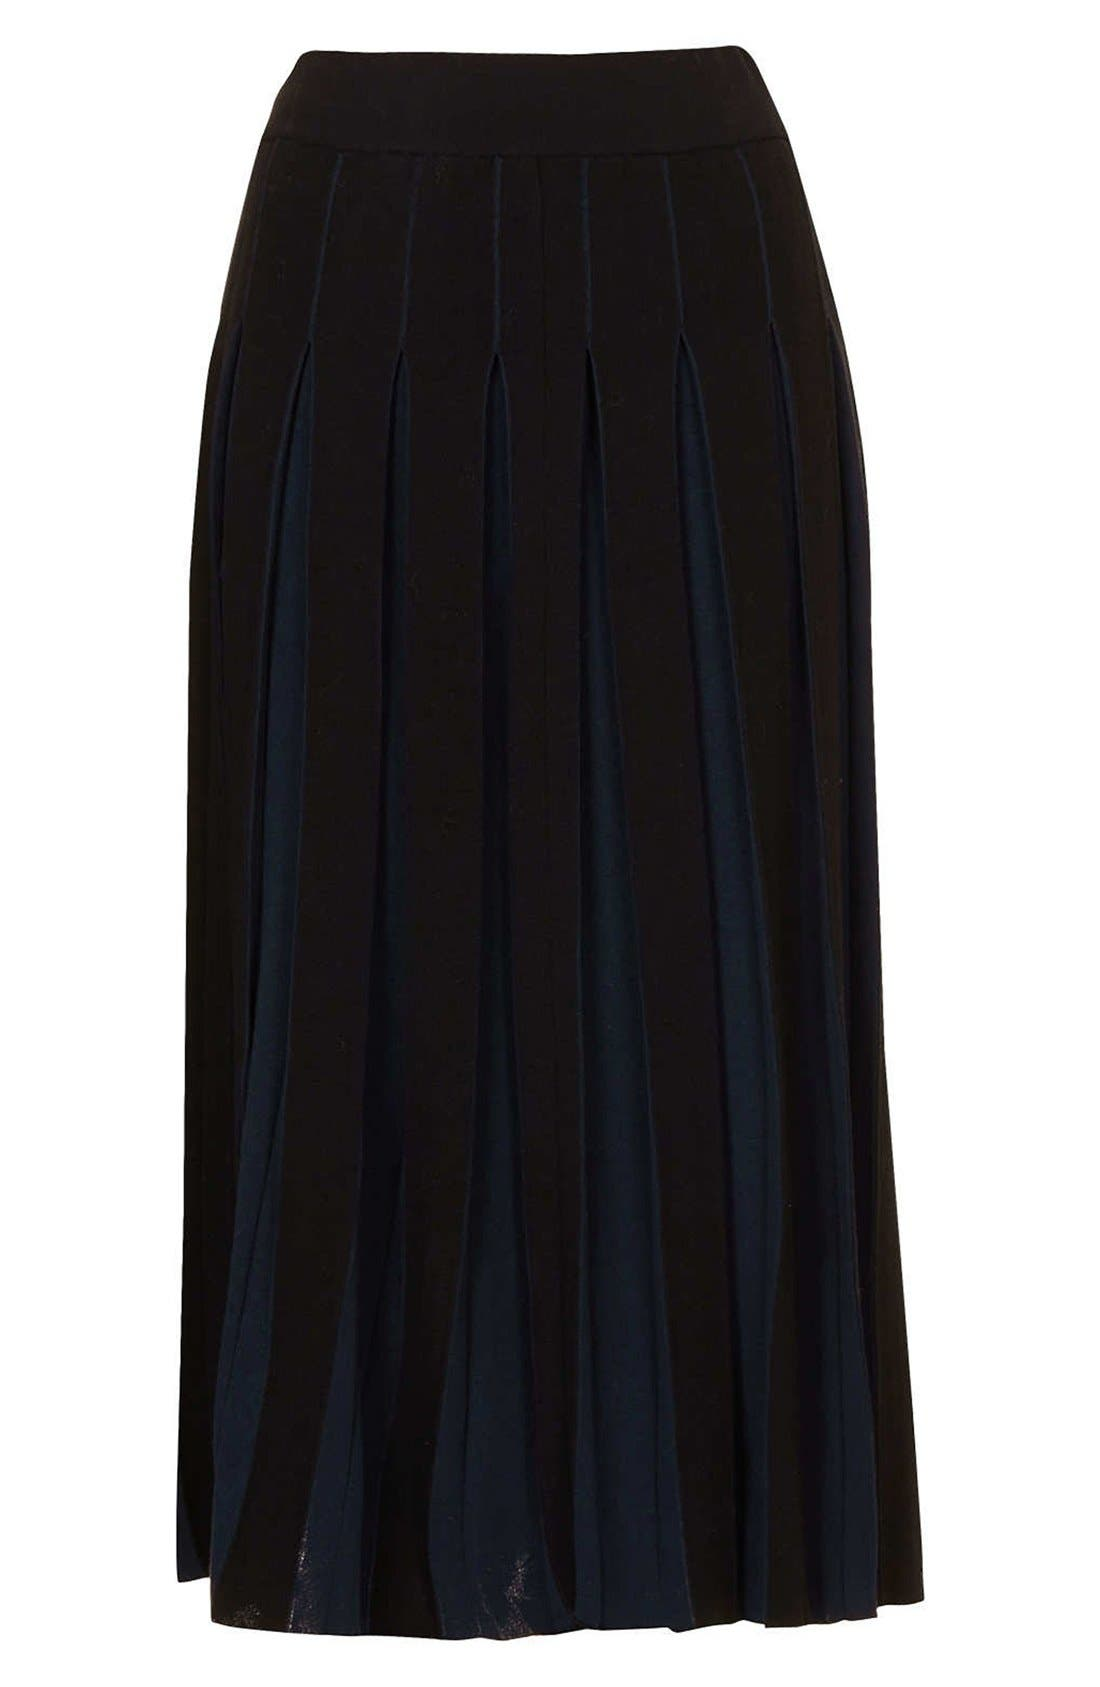 Alternate Image 3  - Topshop Boutique Pleated Two-Tone Midi Skirt